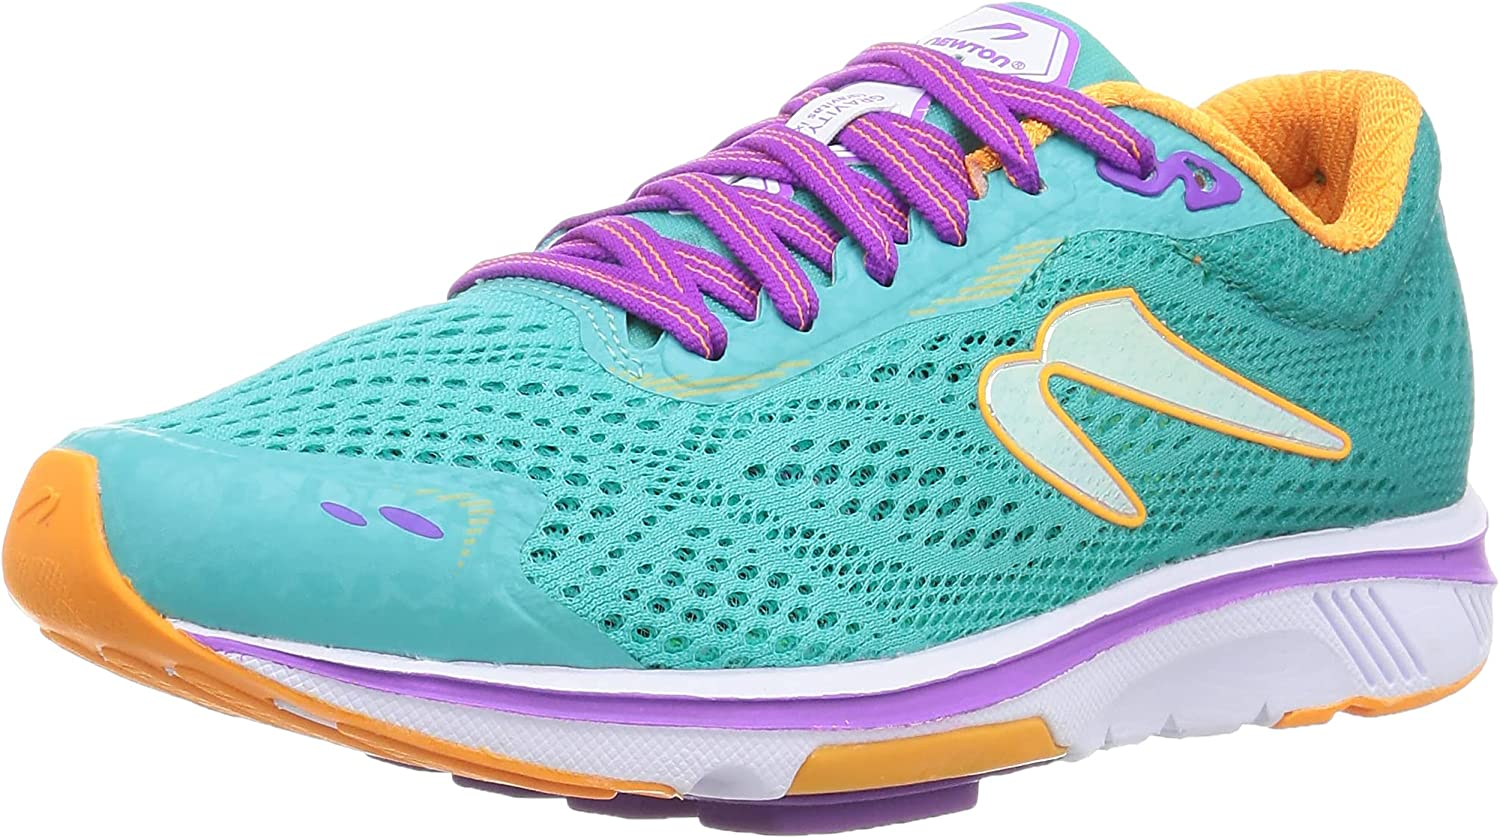 Max 77% OFF 2021 spring and summer new Newton Running Womens 9 Gravity